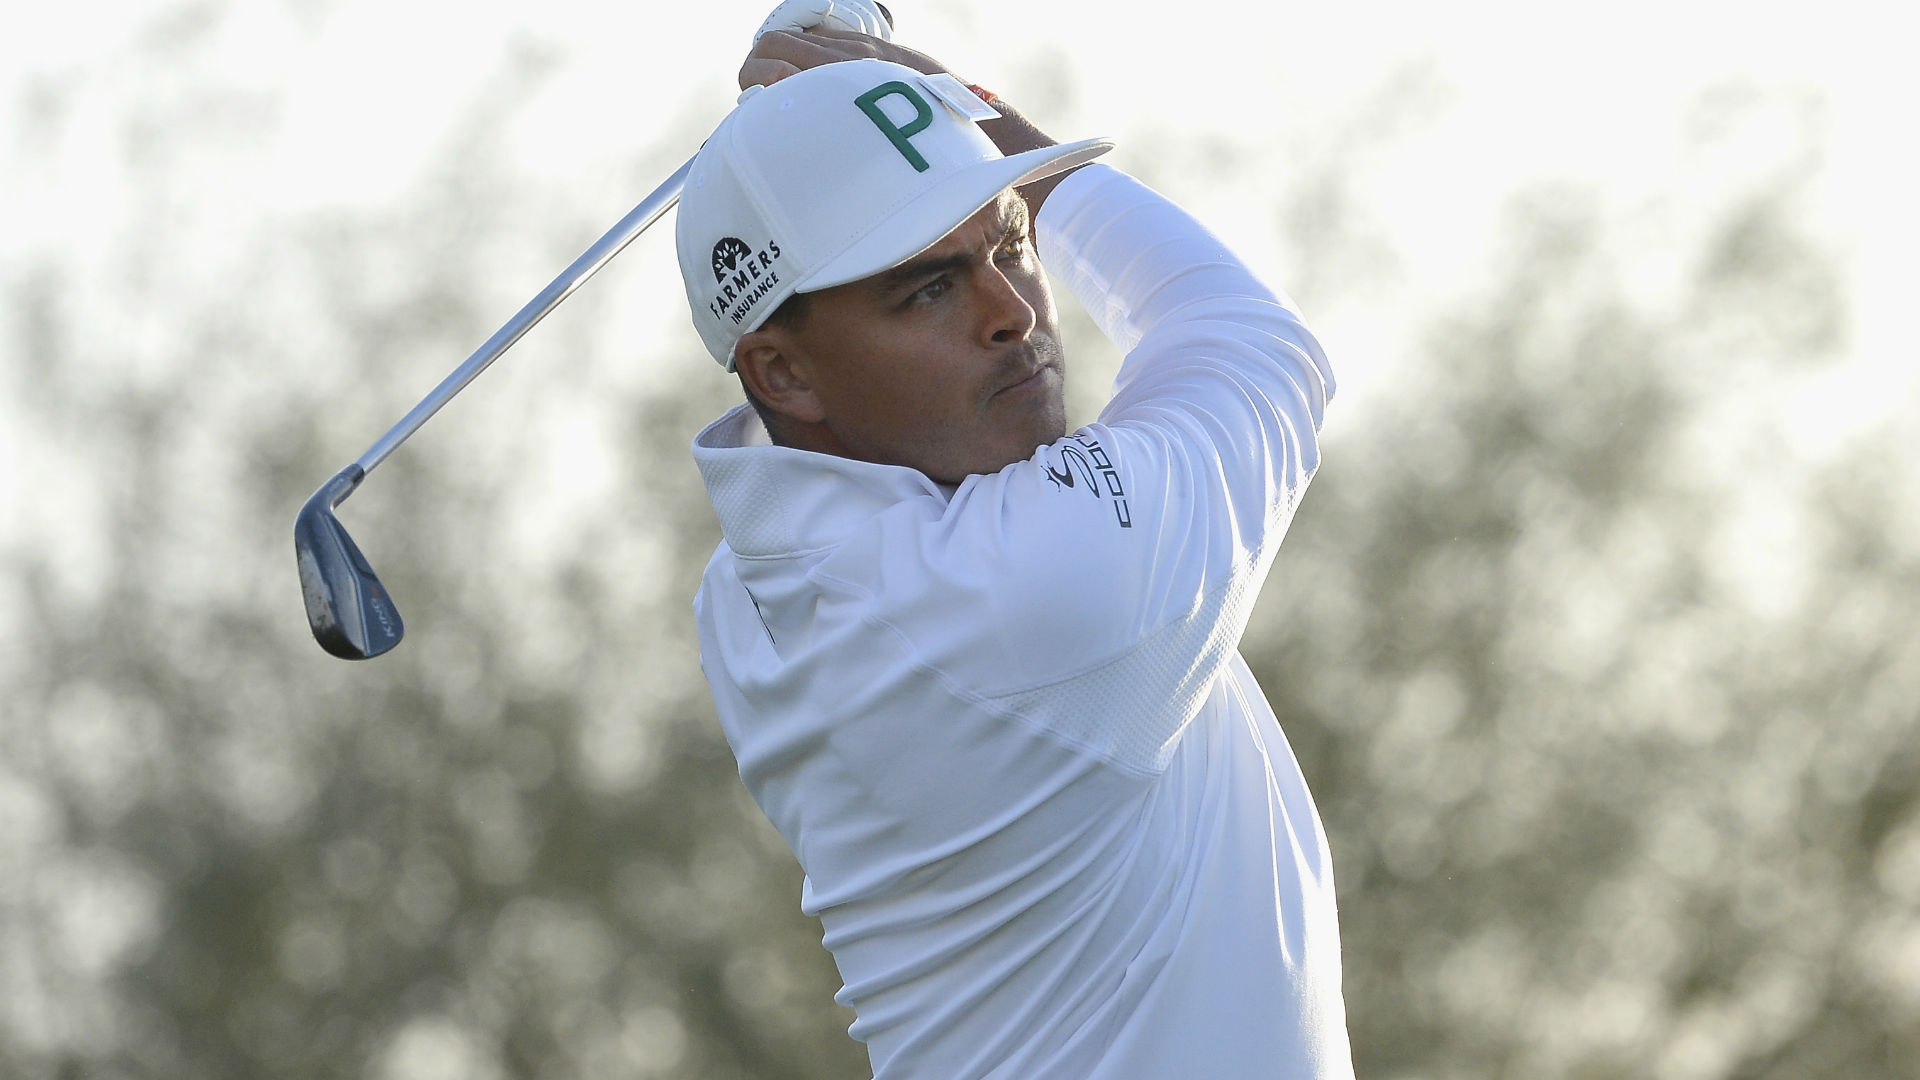 Fowler 'disappointed' by hecklers on 16th hole at TPC Scottsdale